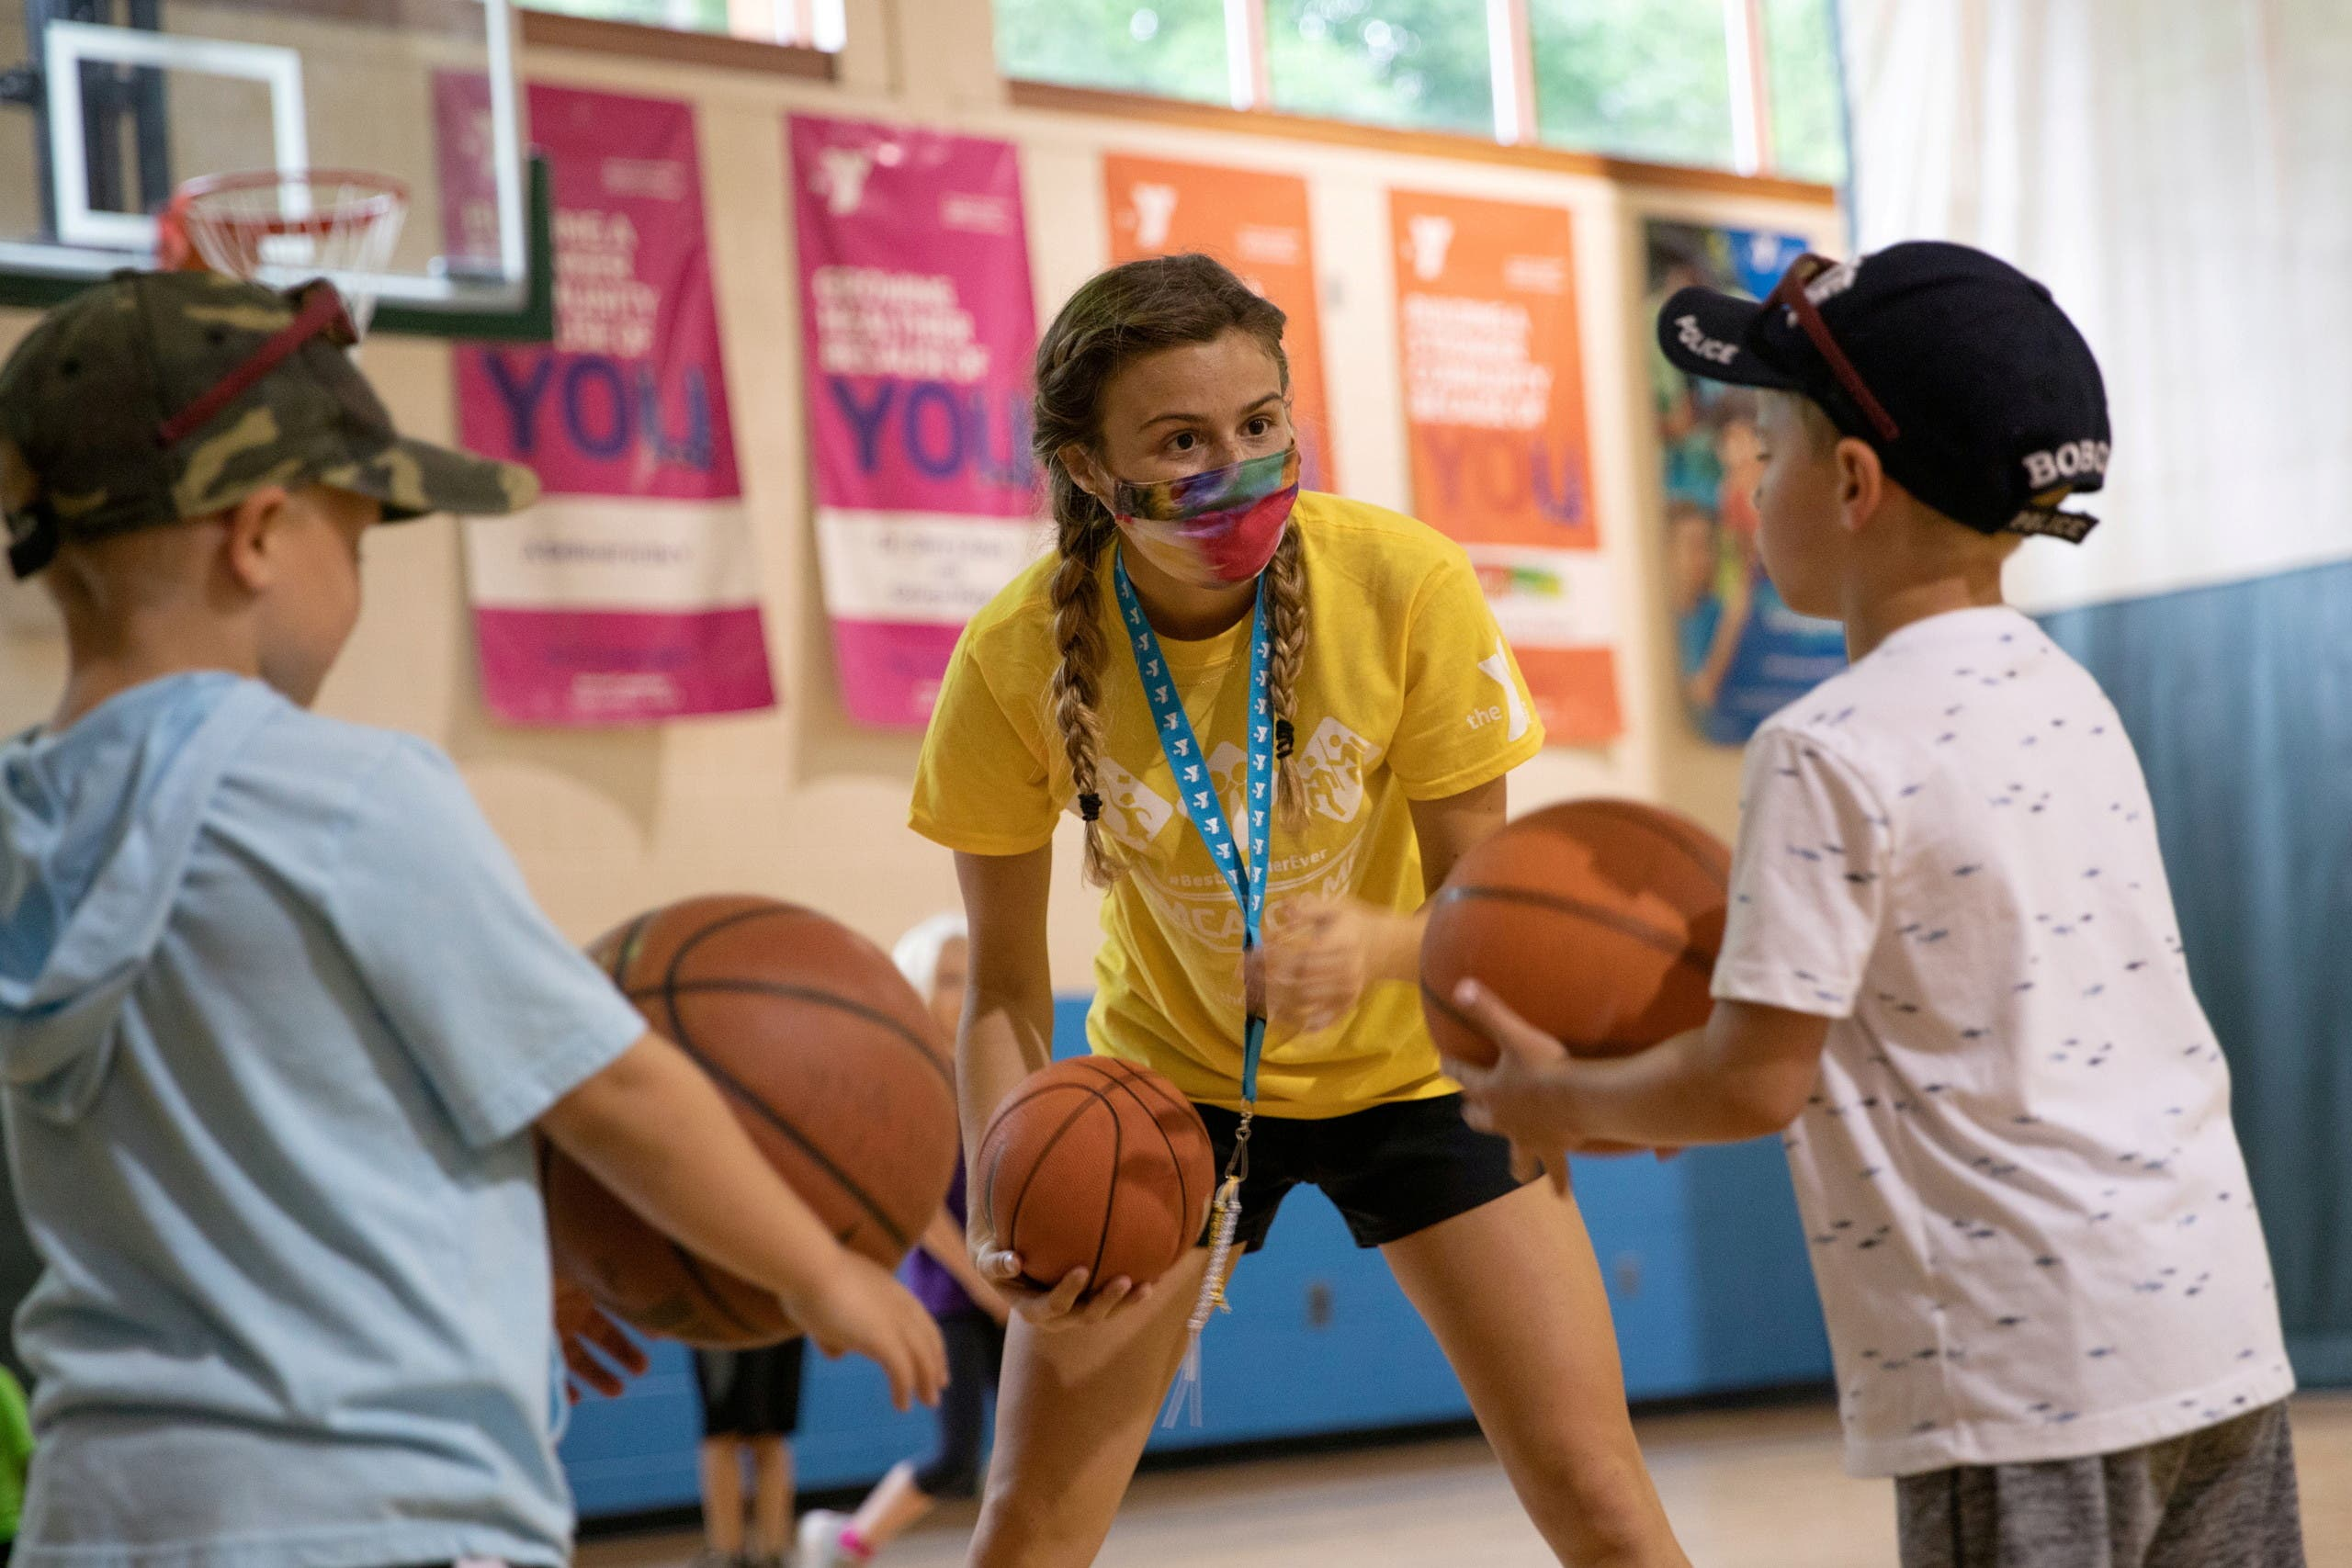 A counselor wearing a protective face mask plays with children as summer camps reopen amid the spread of coronavirus disease (COVID-19) at Carls Family YMCA summer camp in Milford, Michigan, U.S., June 23, 2020. (File Photo: Reuters)